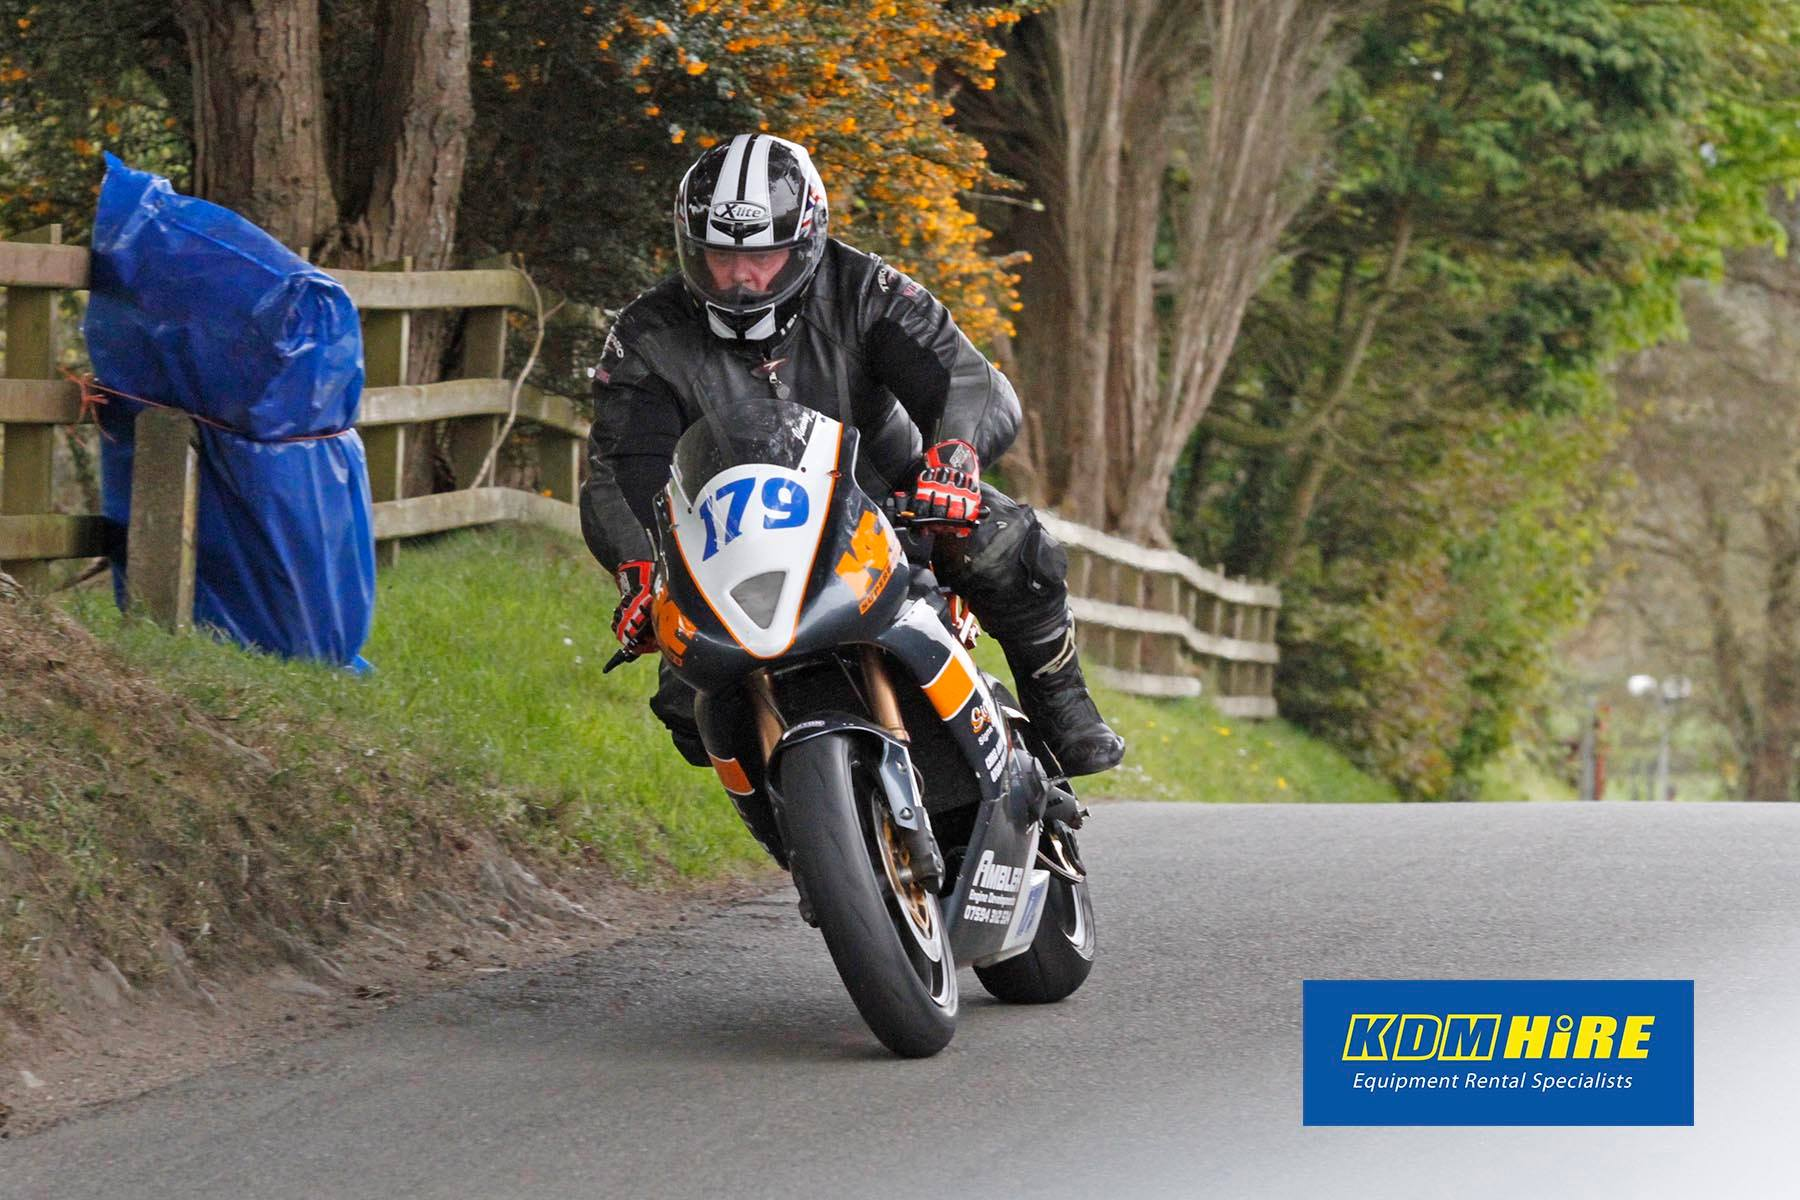 Cookstown 100: Age No Barrier For James Rothery